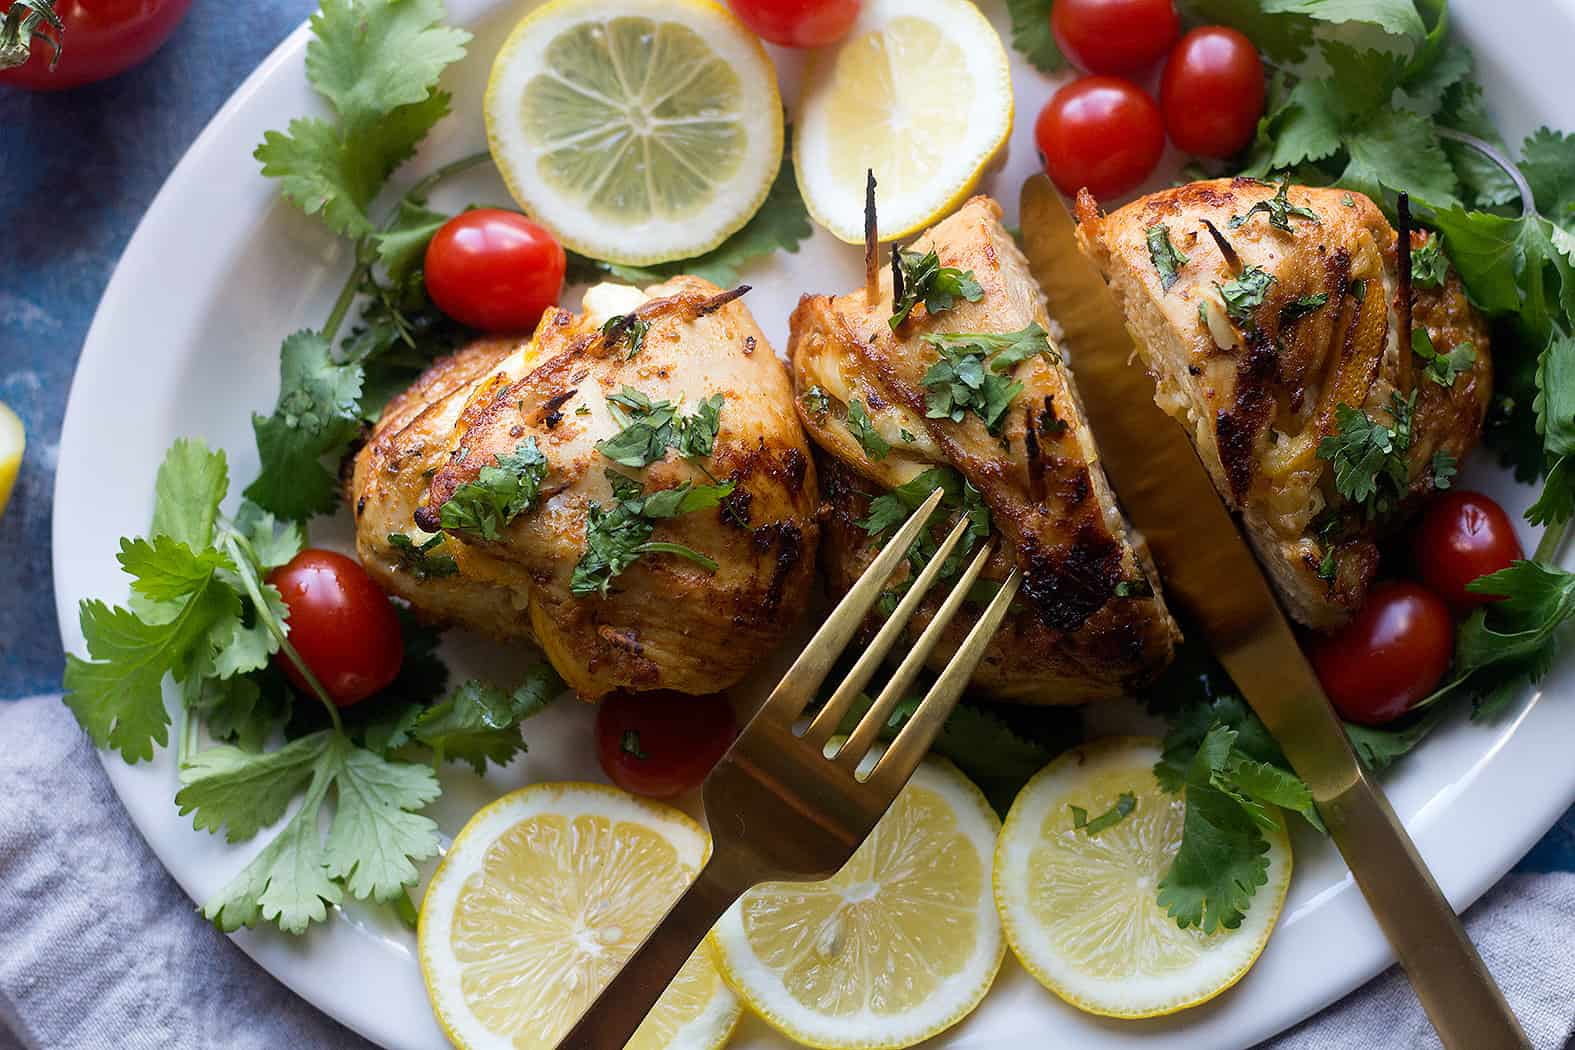 This cheese stuffed chicken breast is great for a dinner with family.